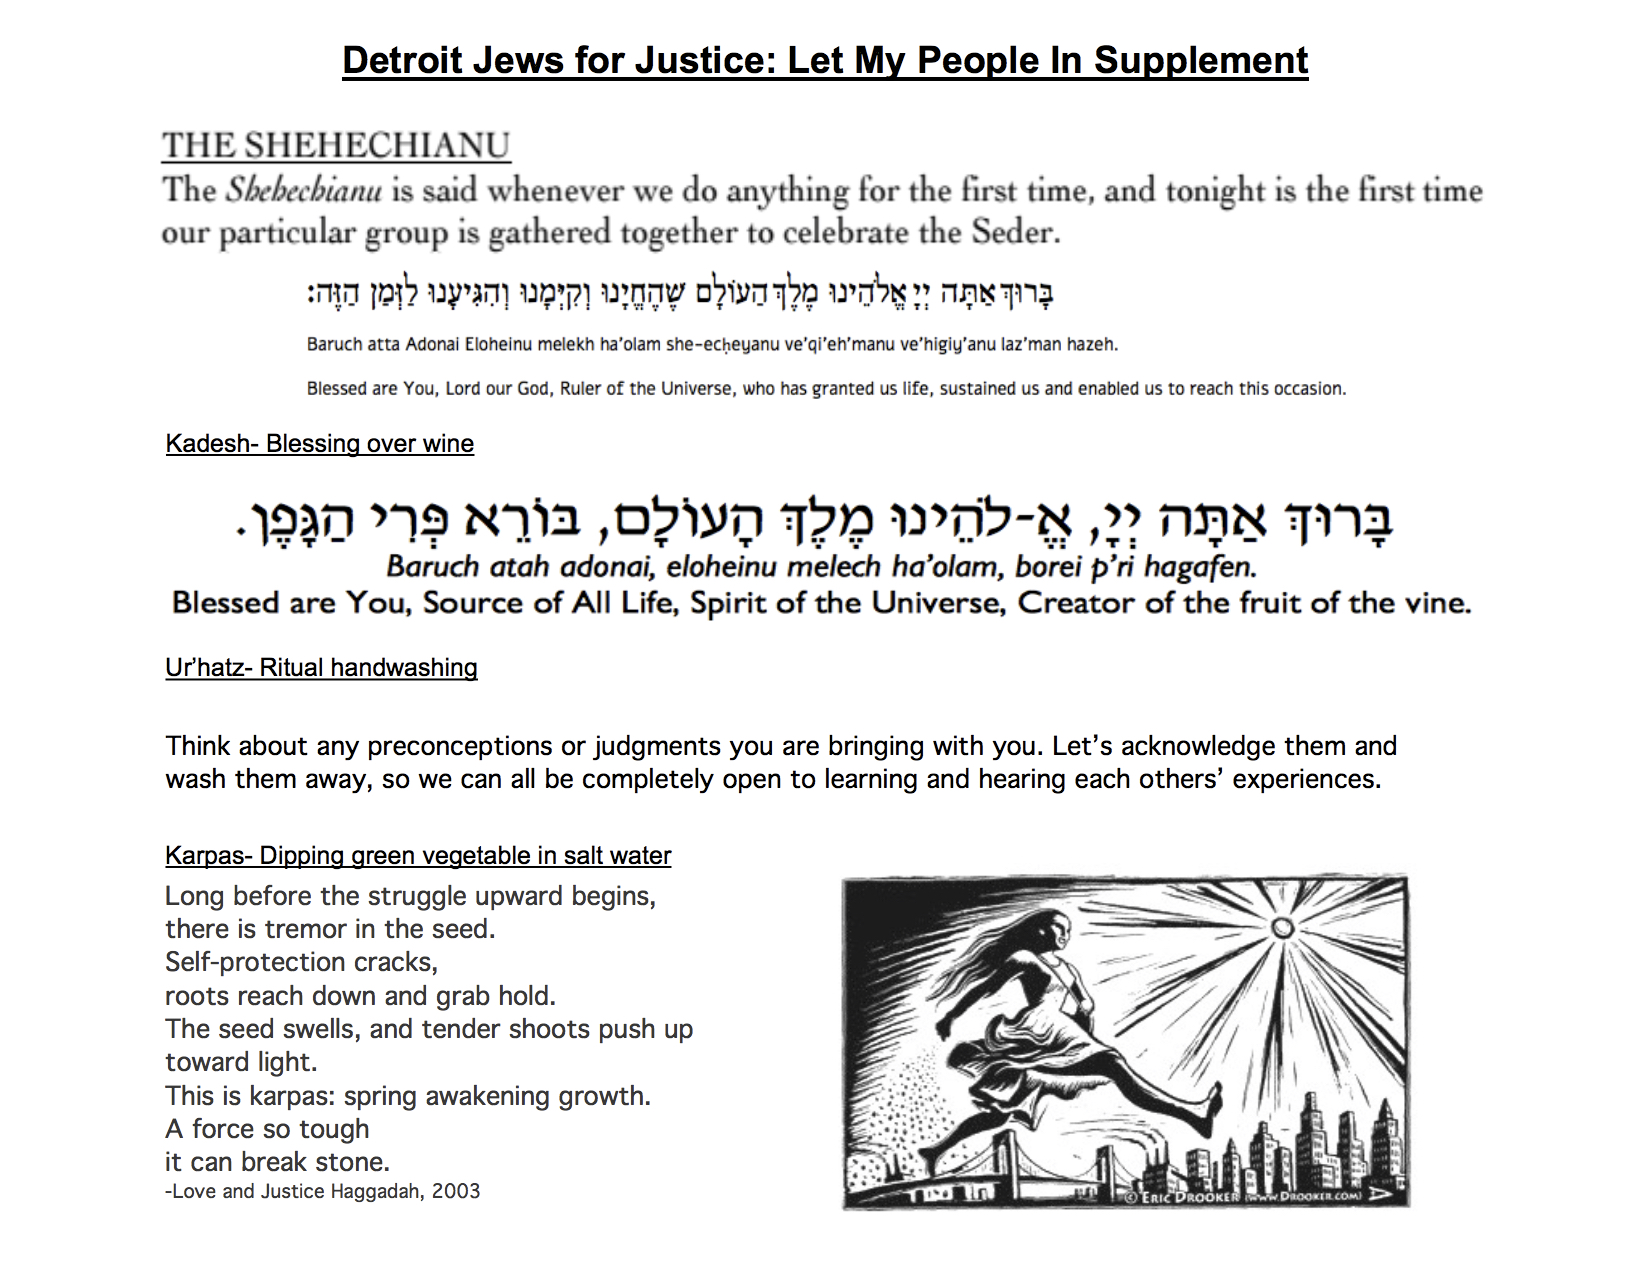 Detroit_Jews_for_Justice_Supplement__3.jpg